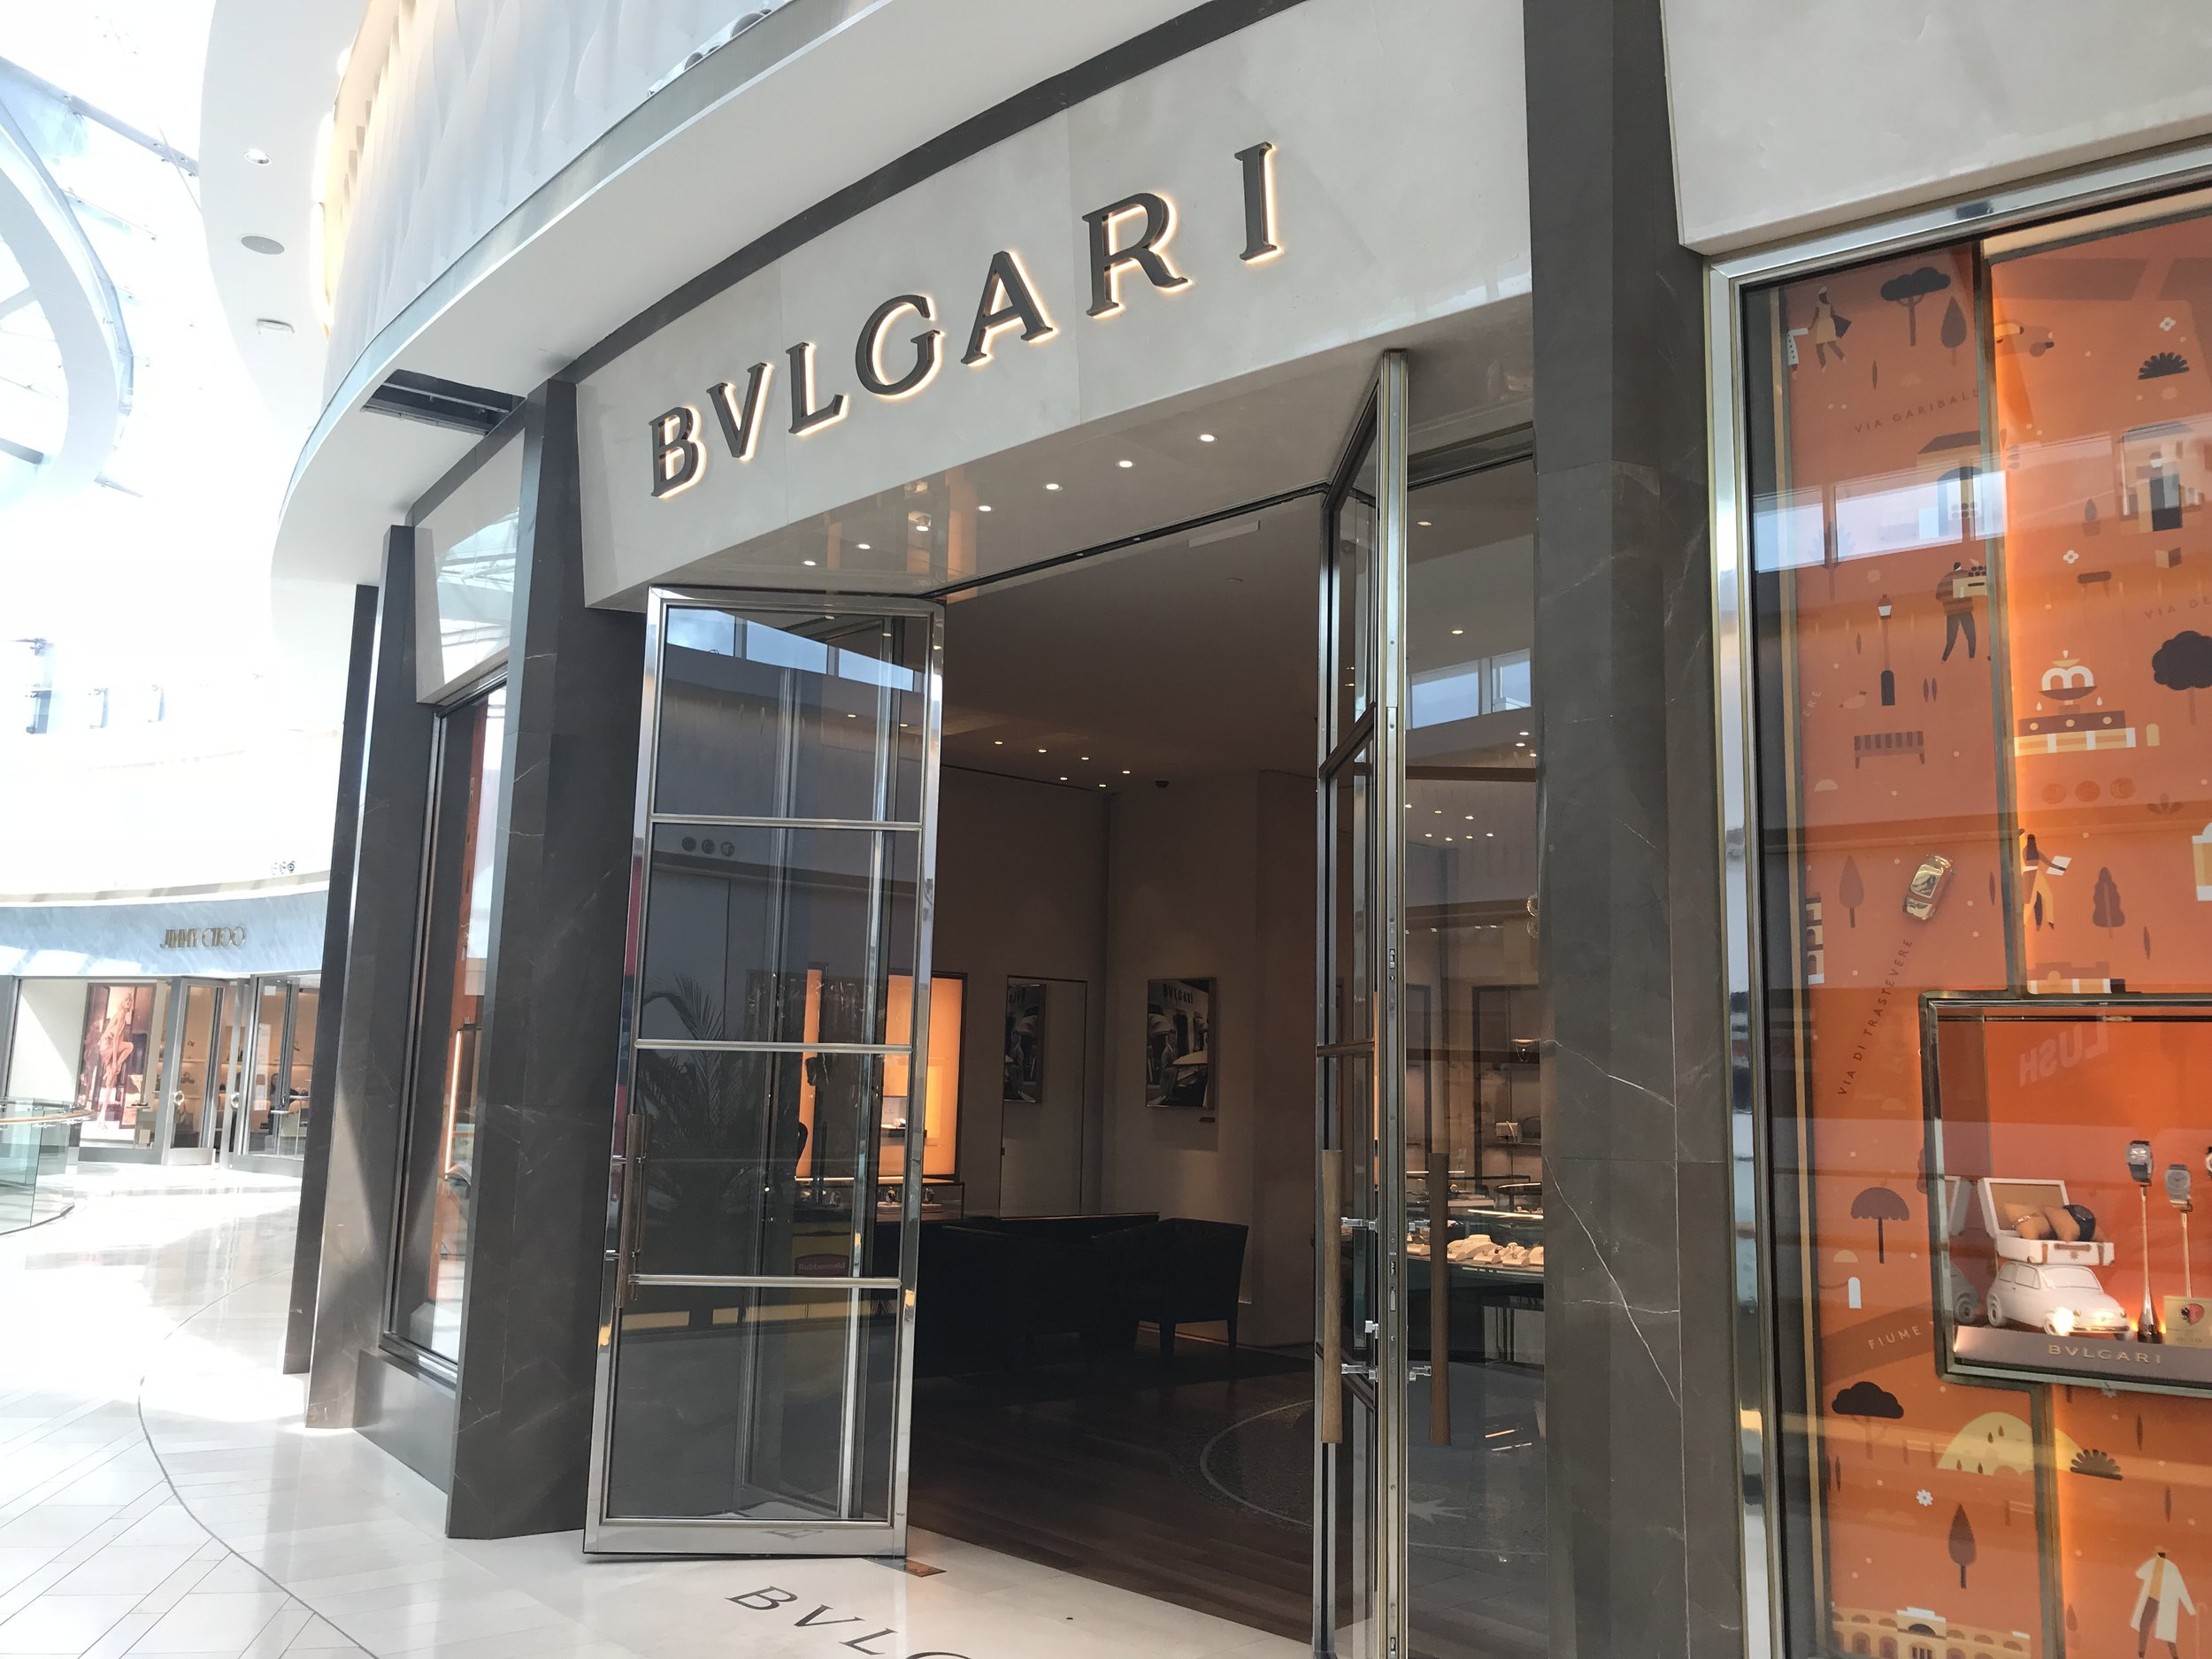 Receive a personalized in-store experience and an exlcusive Bulgari gift with any purchase. -